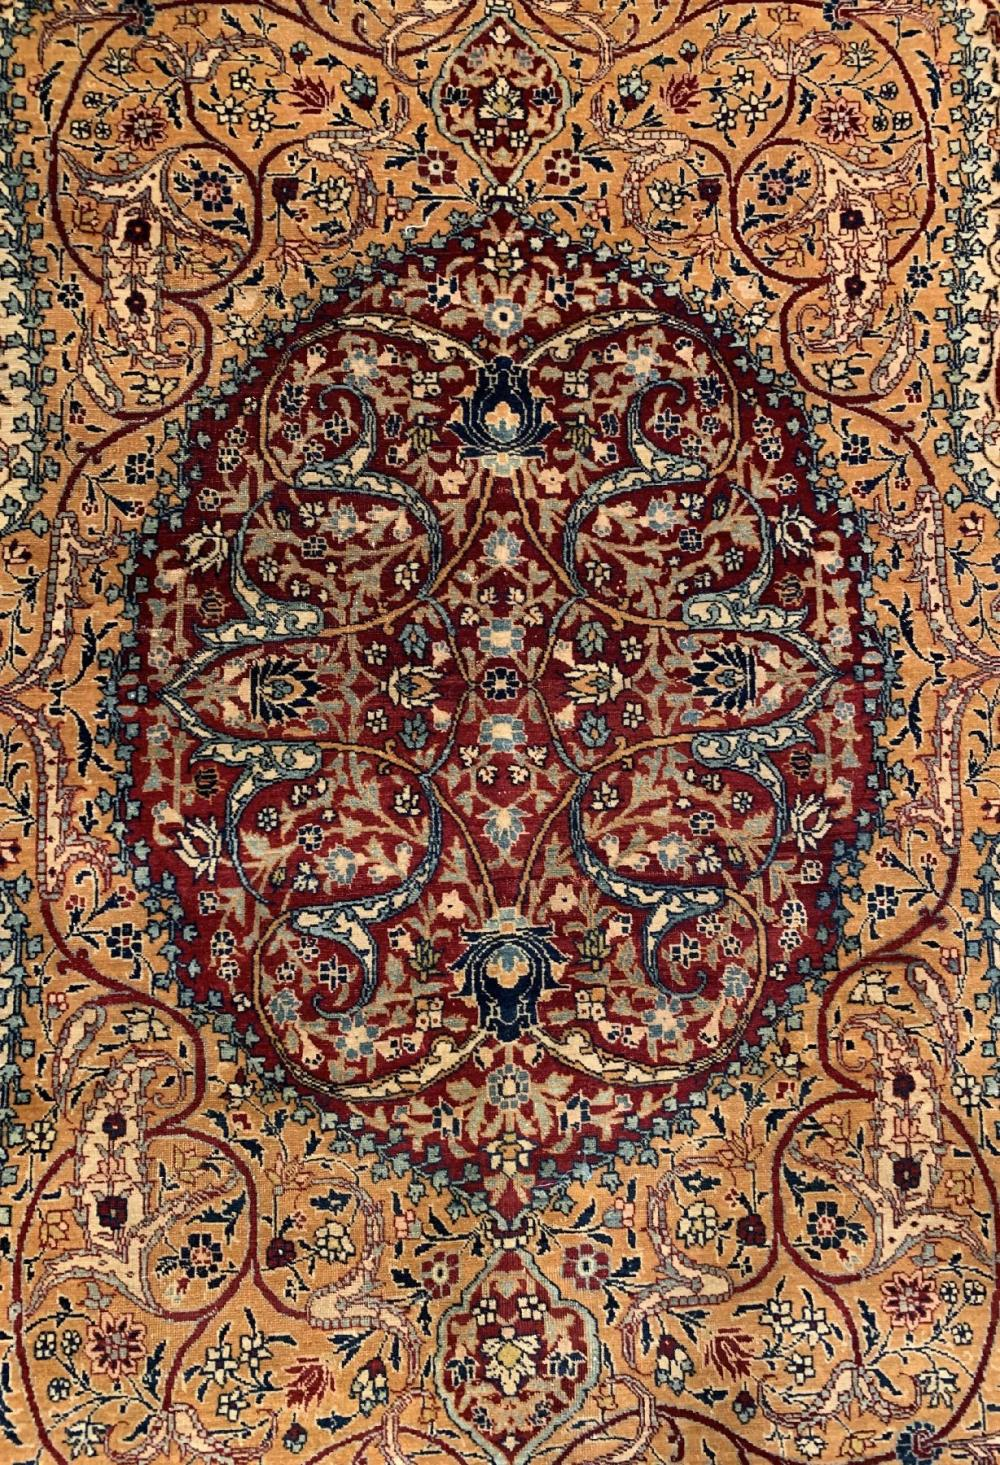 Antique fine Agra, North India, around 1900, wool knotted